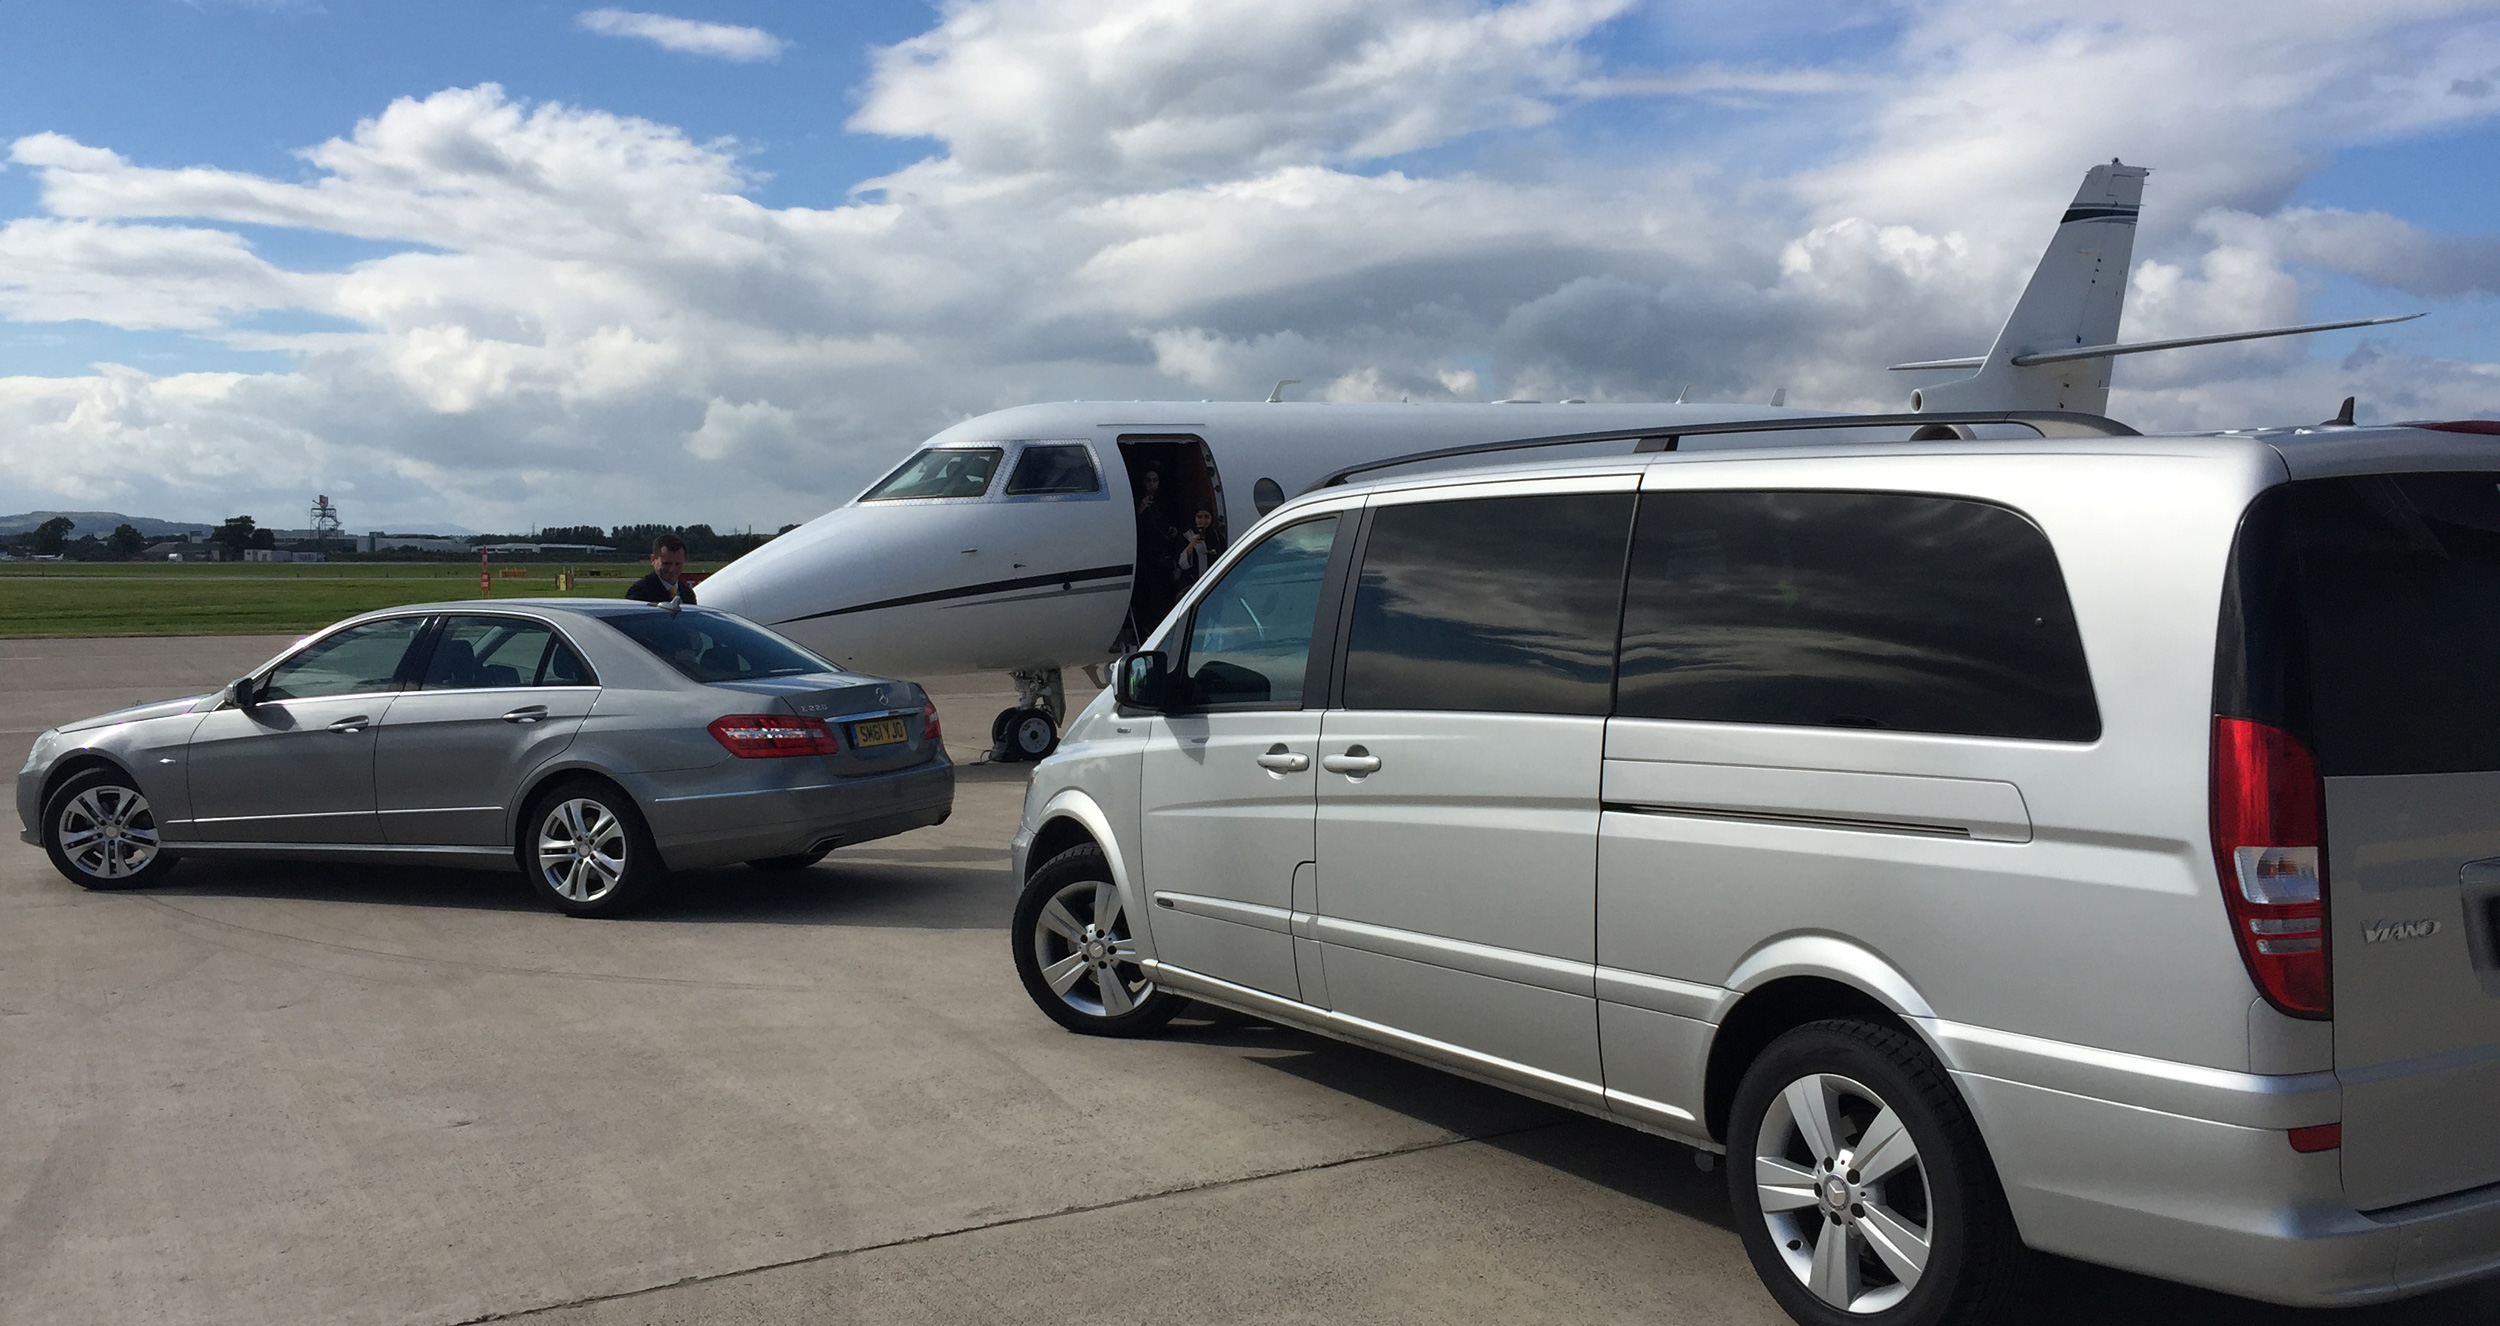 Oxford to Luton airport service car